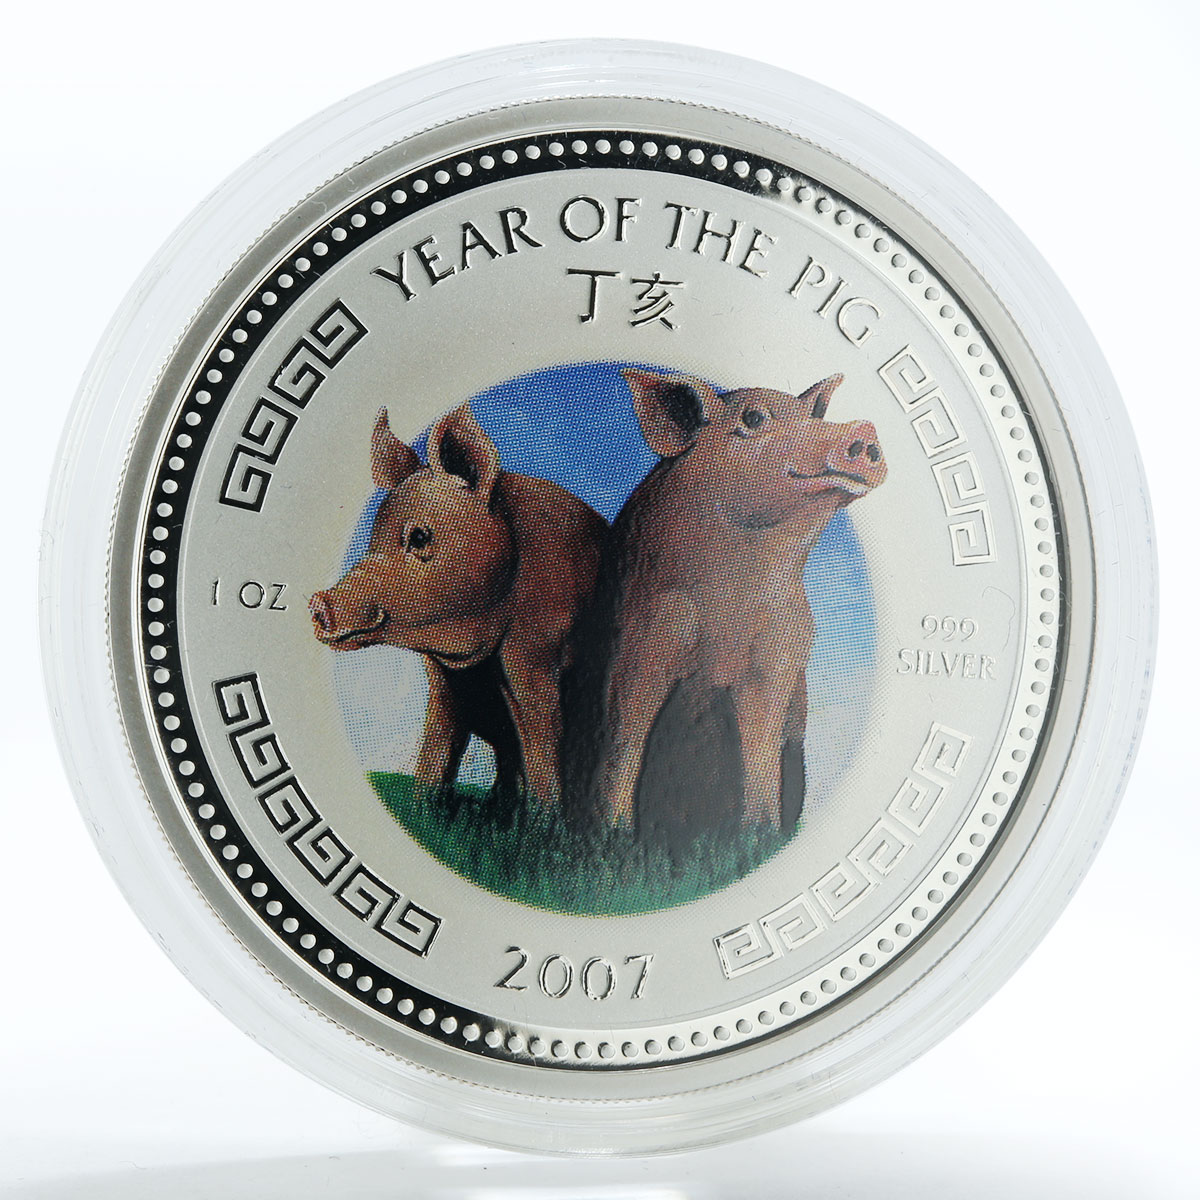 Cambodia 3000 riels Lunar Year Series - Year of the Pig proof silver coin 2007